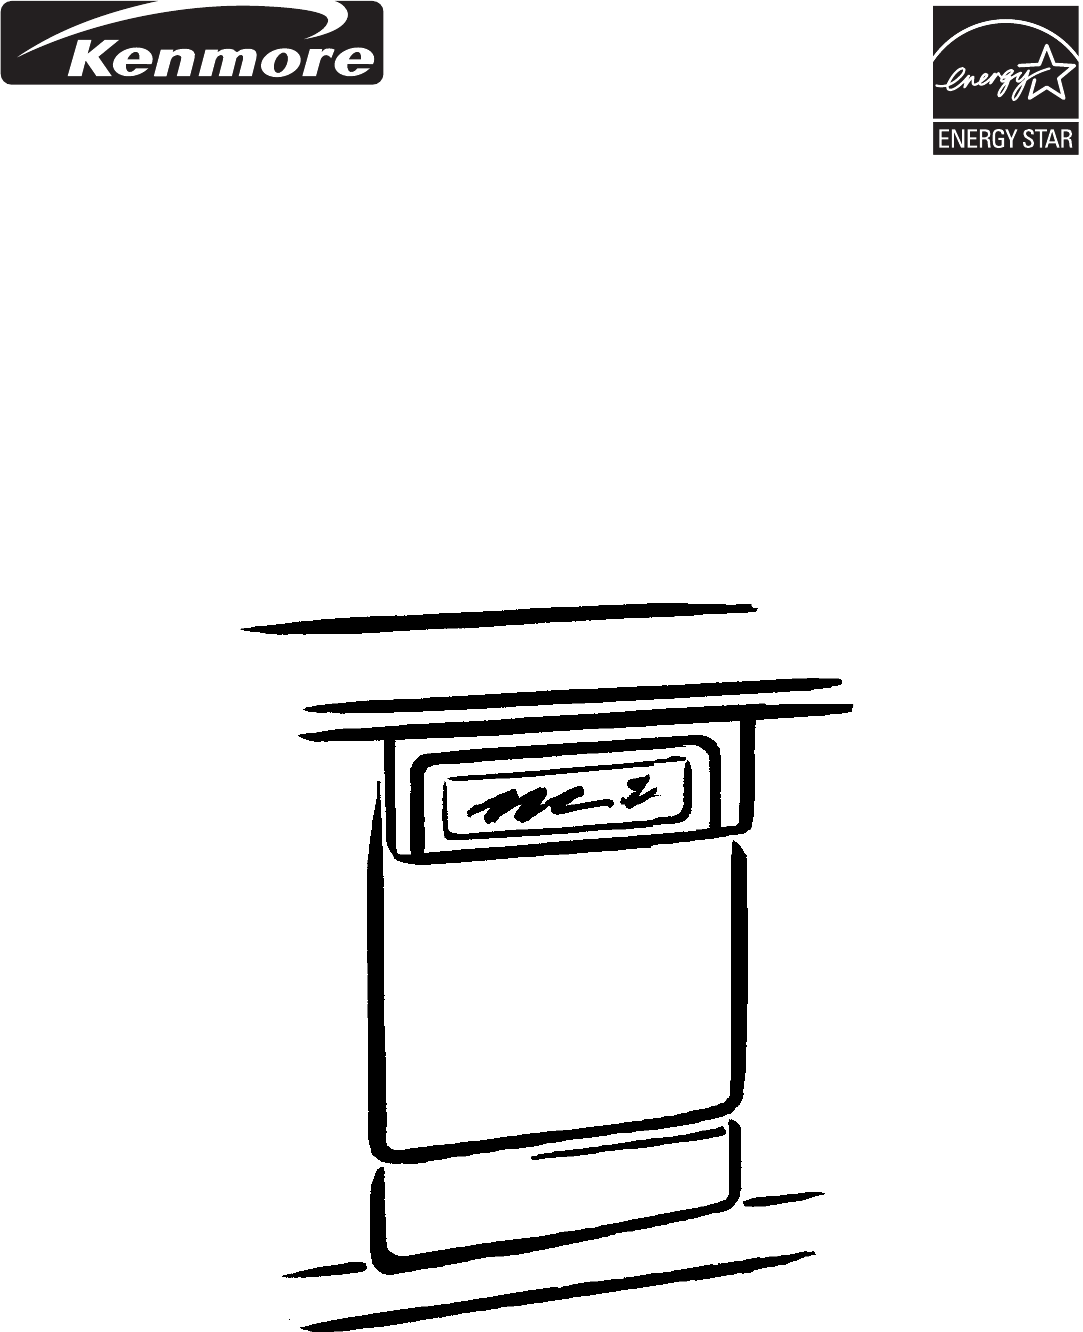 Download Kenmore Dishwasher 587.144 Manual And User Guides